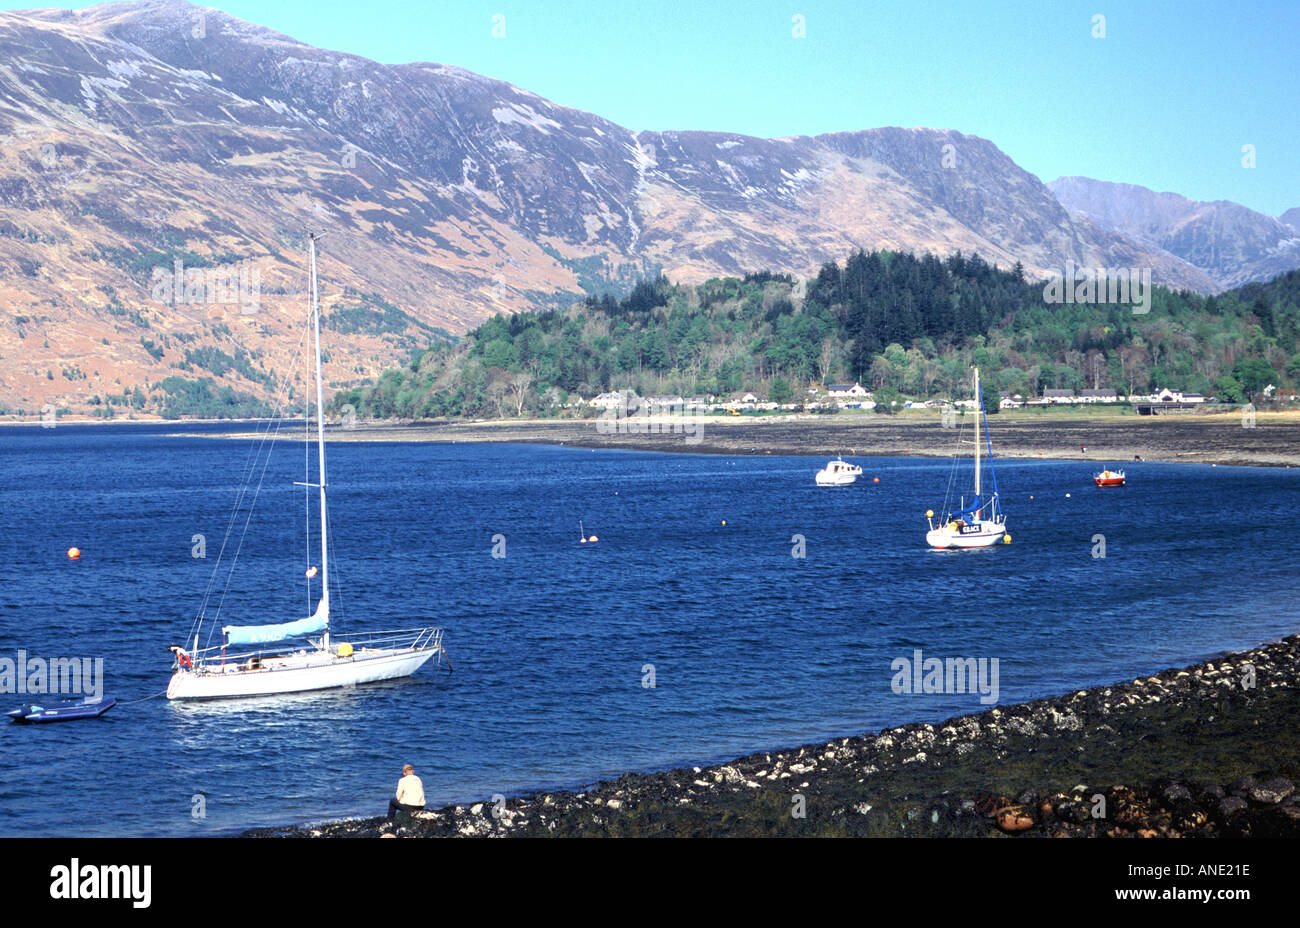 Sailing boats anchored in Loch Leven near Glencoe in western Highland Scotland Stock Photo